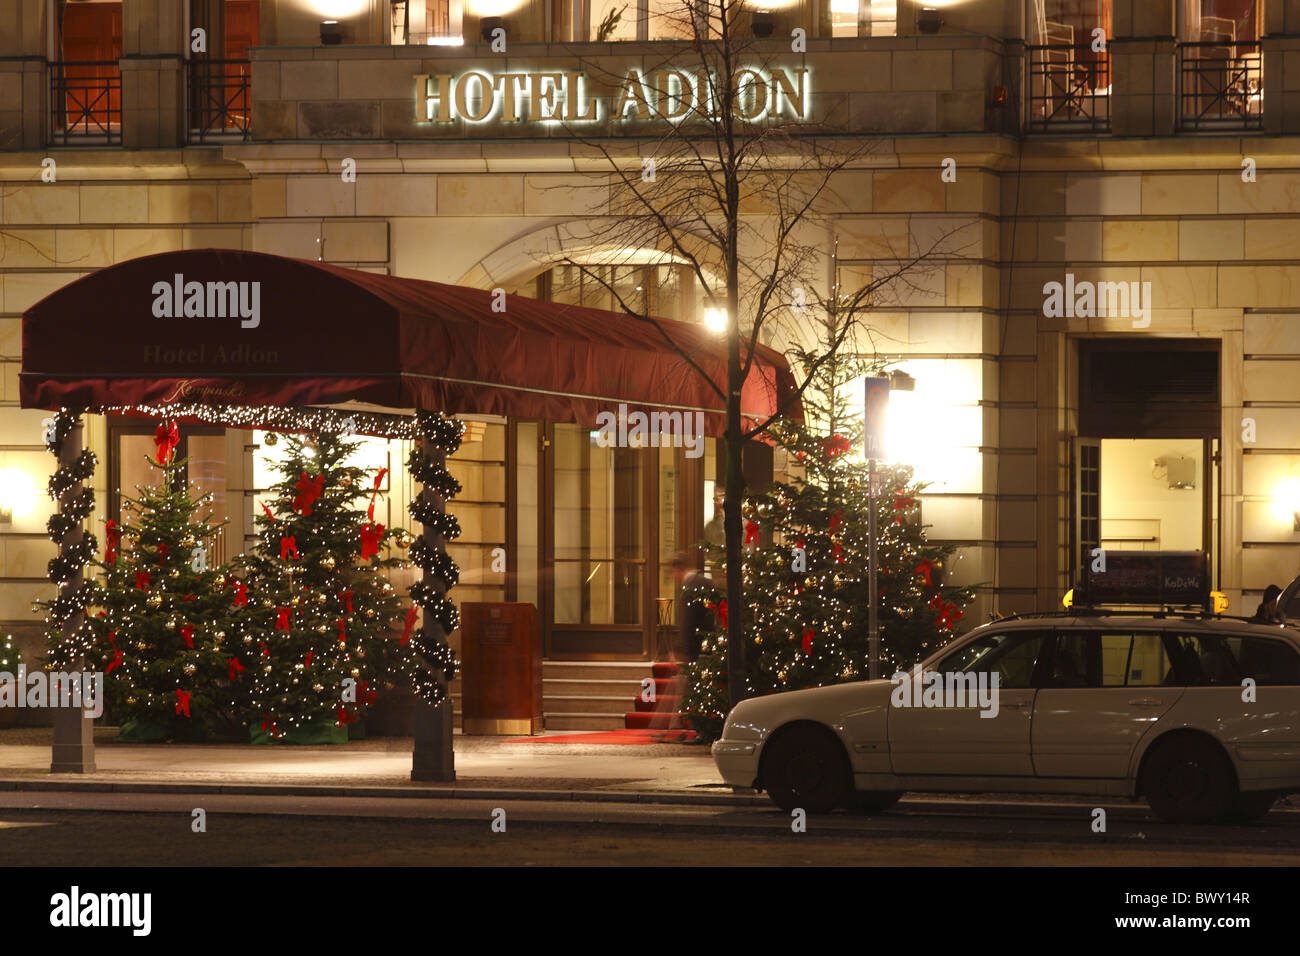 berlin weihnachten pariser platz hotel adlon stock photo. Black Bedroom Furniture Sets. Home Design Ideas